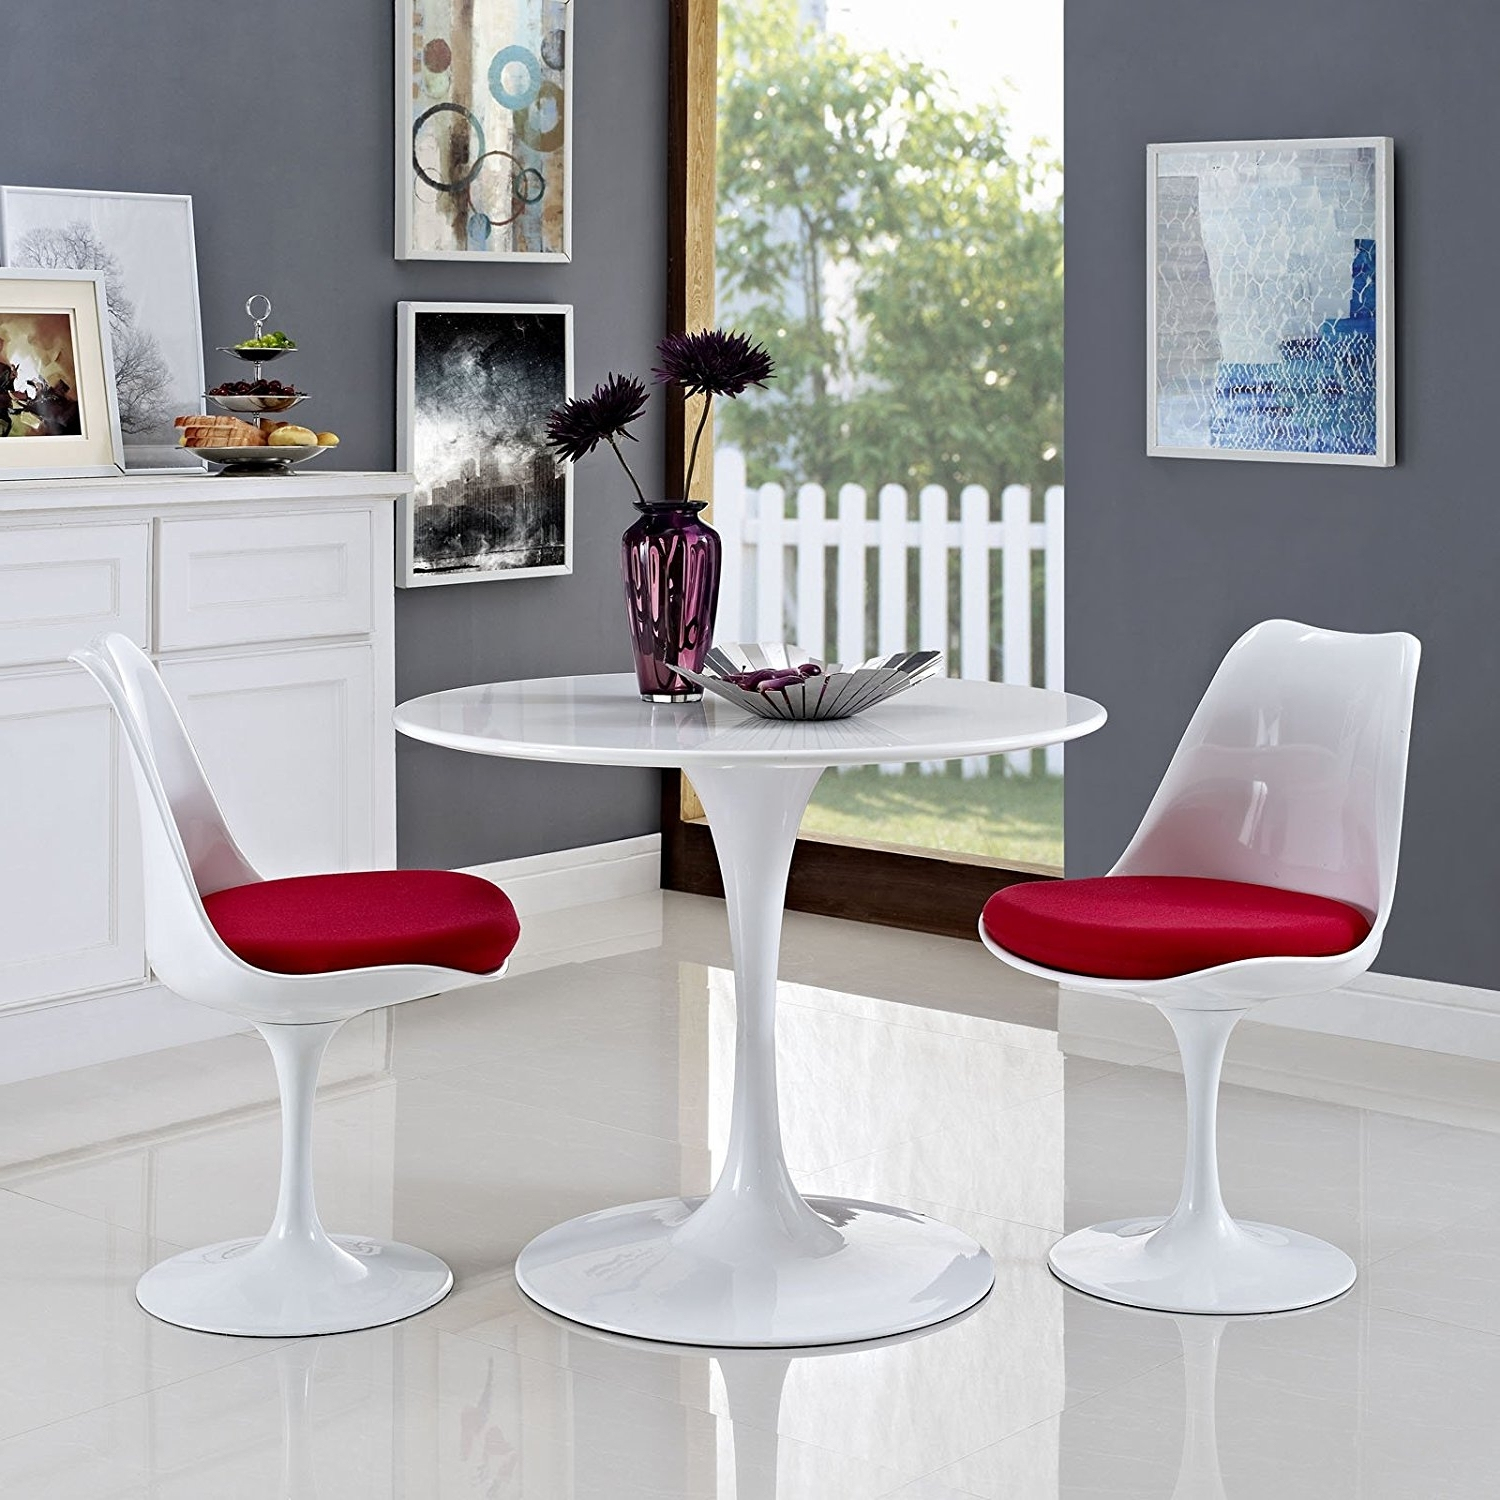 Most Popular Small Round White Dining Tables In Twenty Dining Tables That Work Great In Small Spaces – Living In A (View 11 of 25)